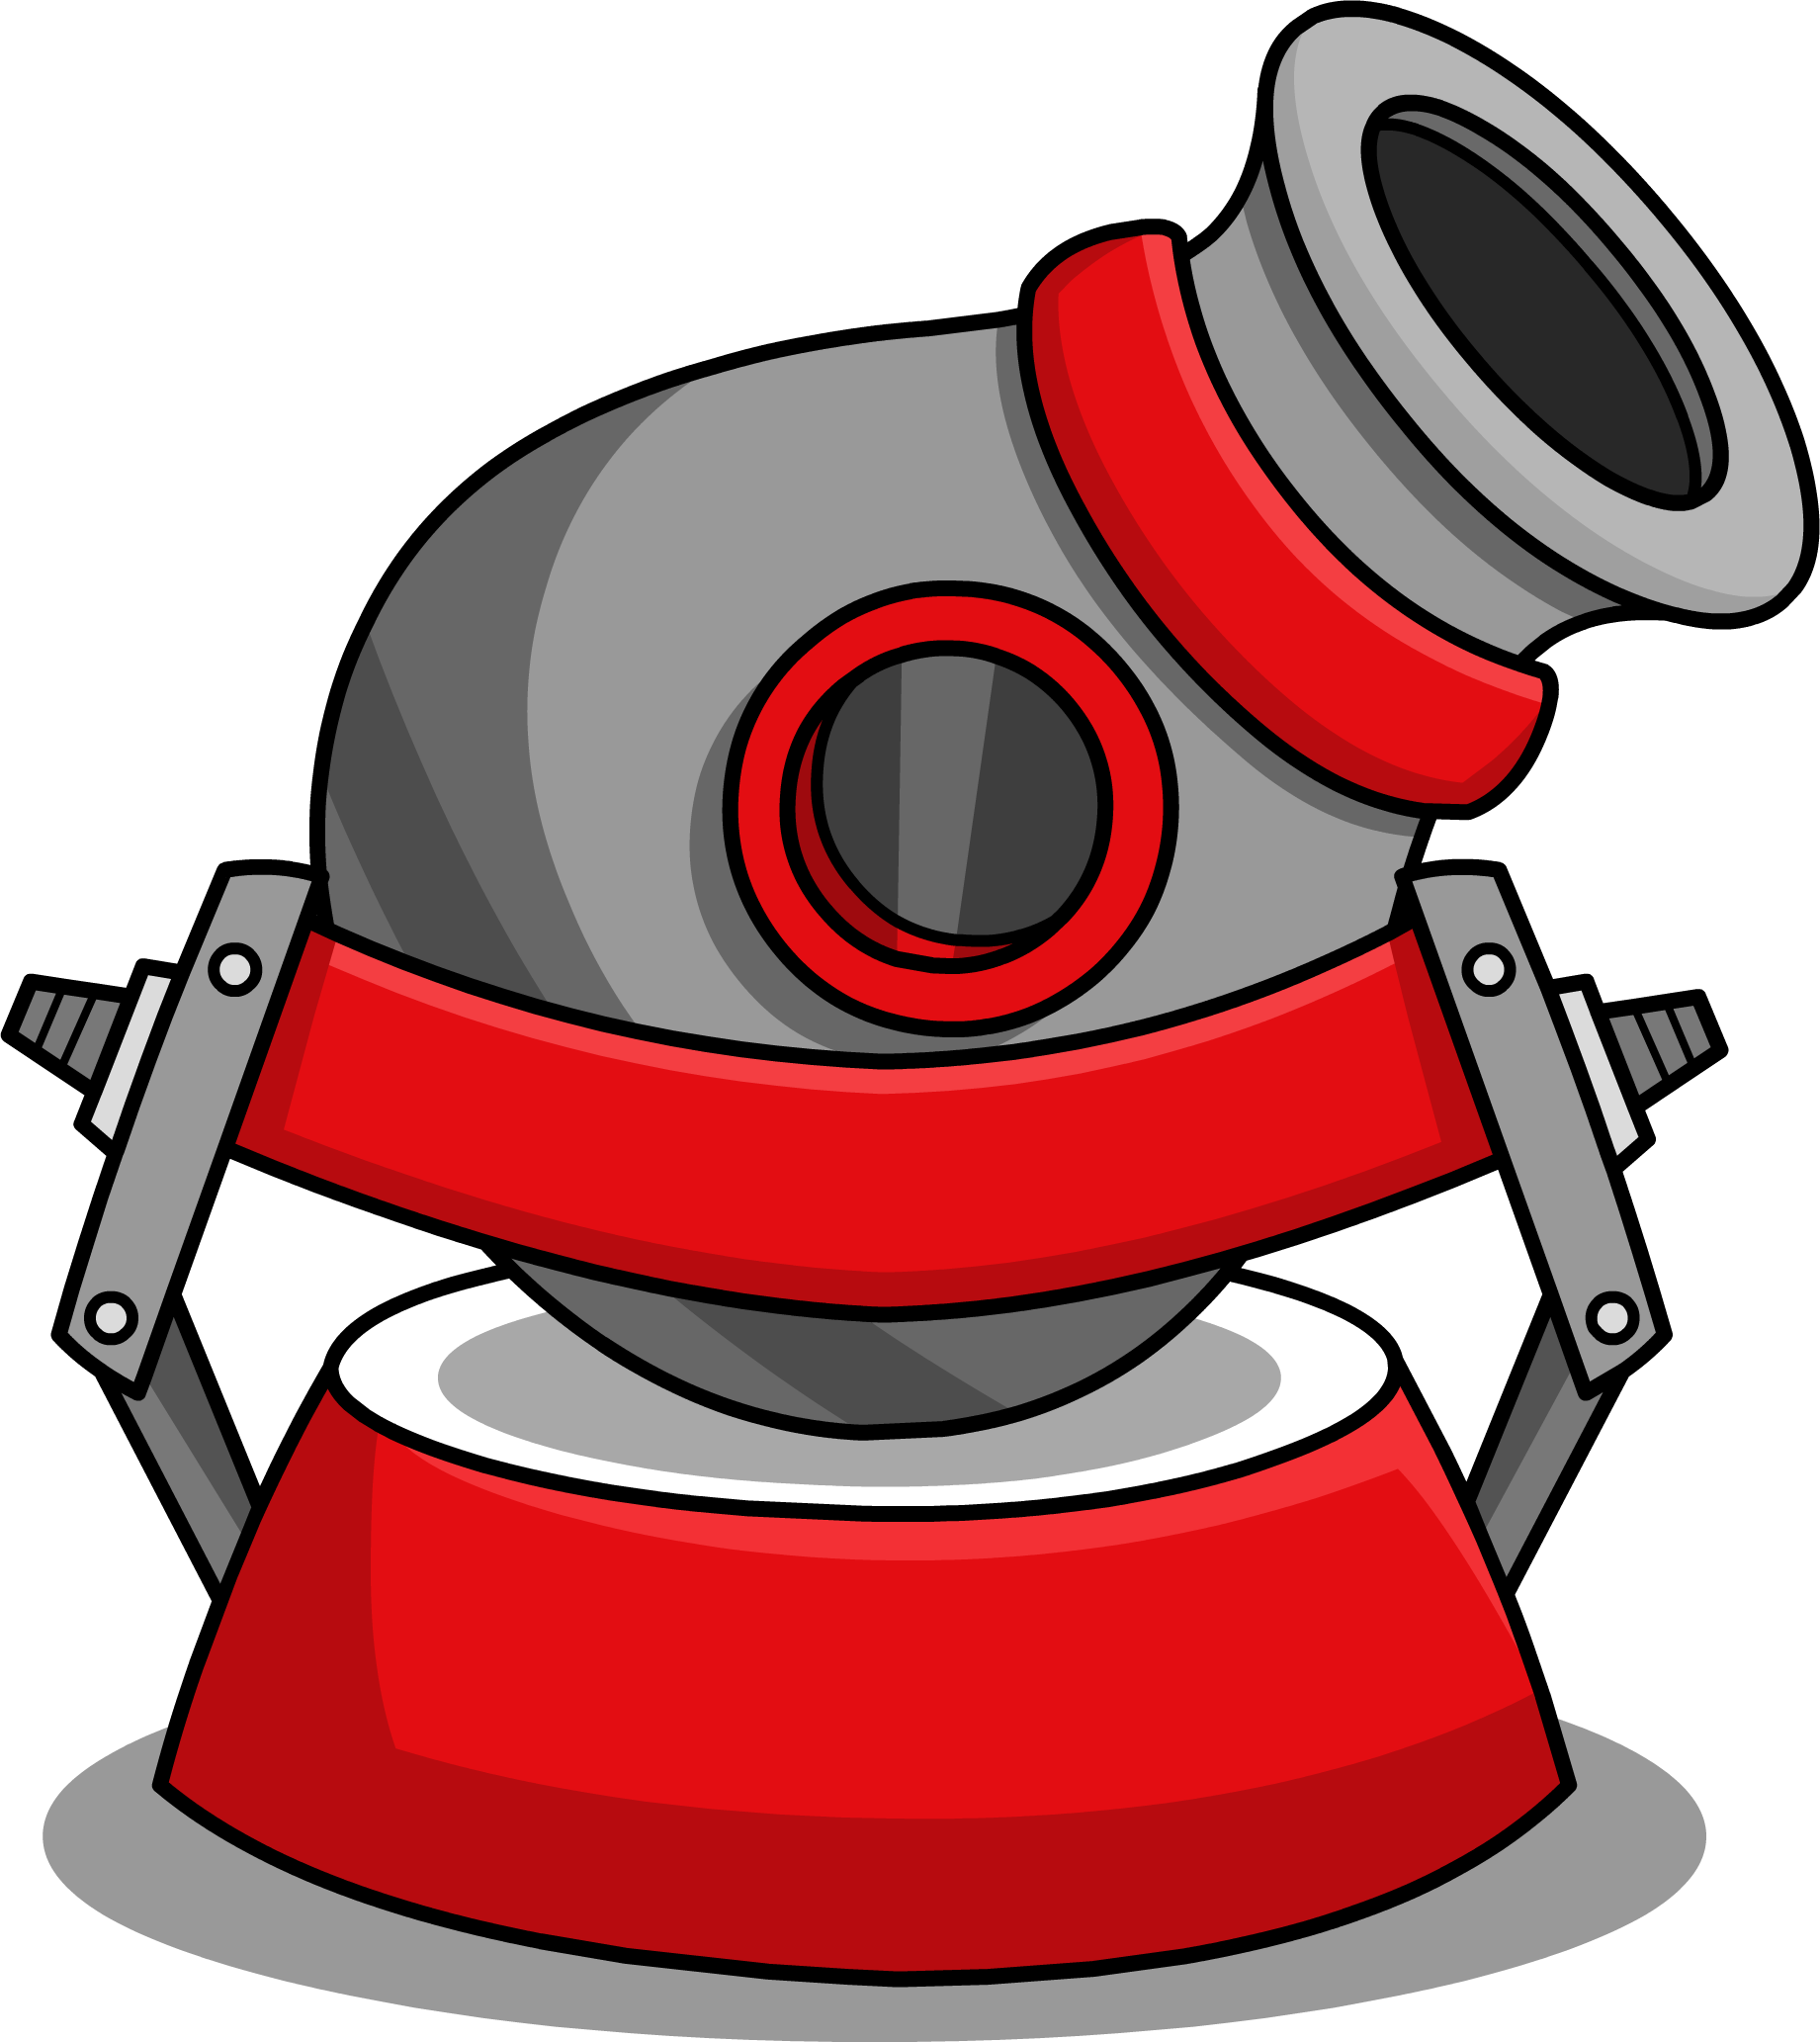 Cannon sprite png. Image puffle club penguin